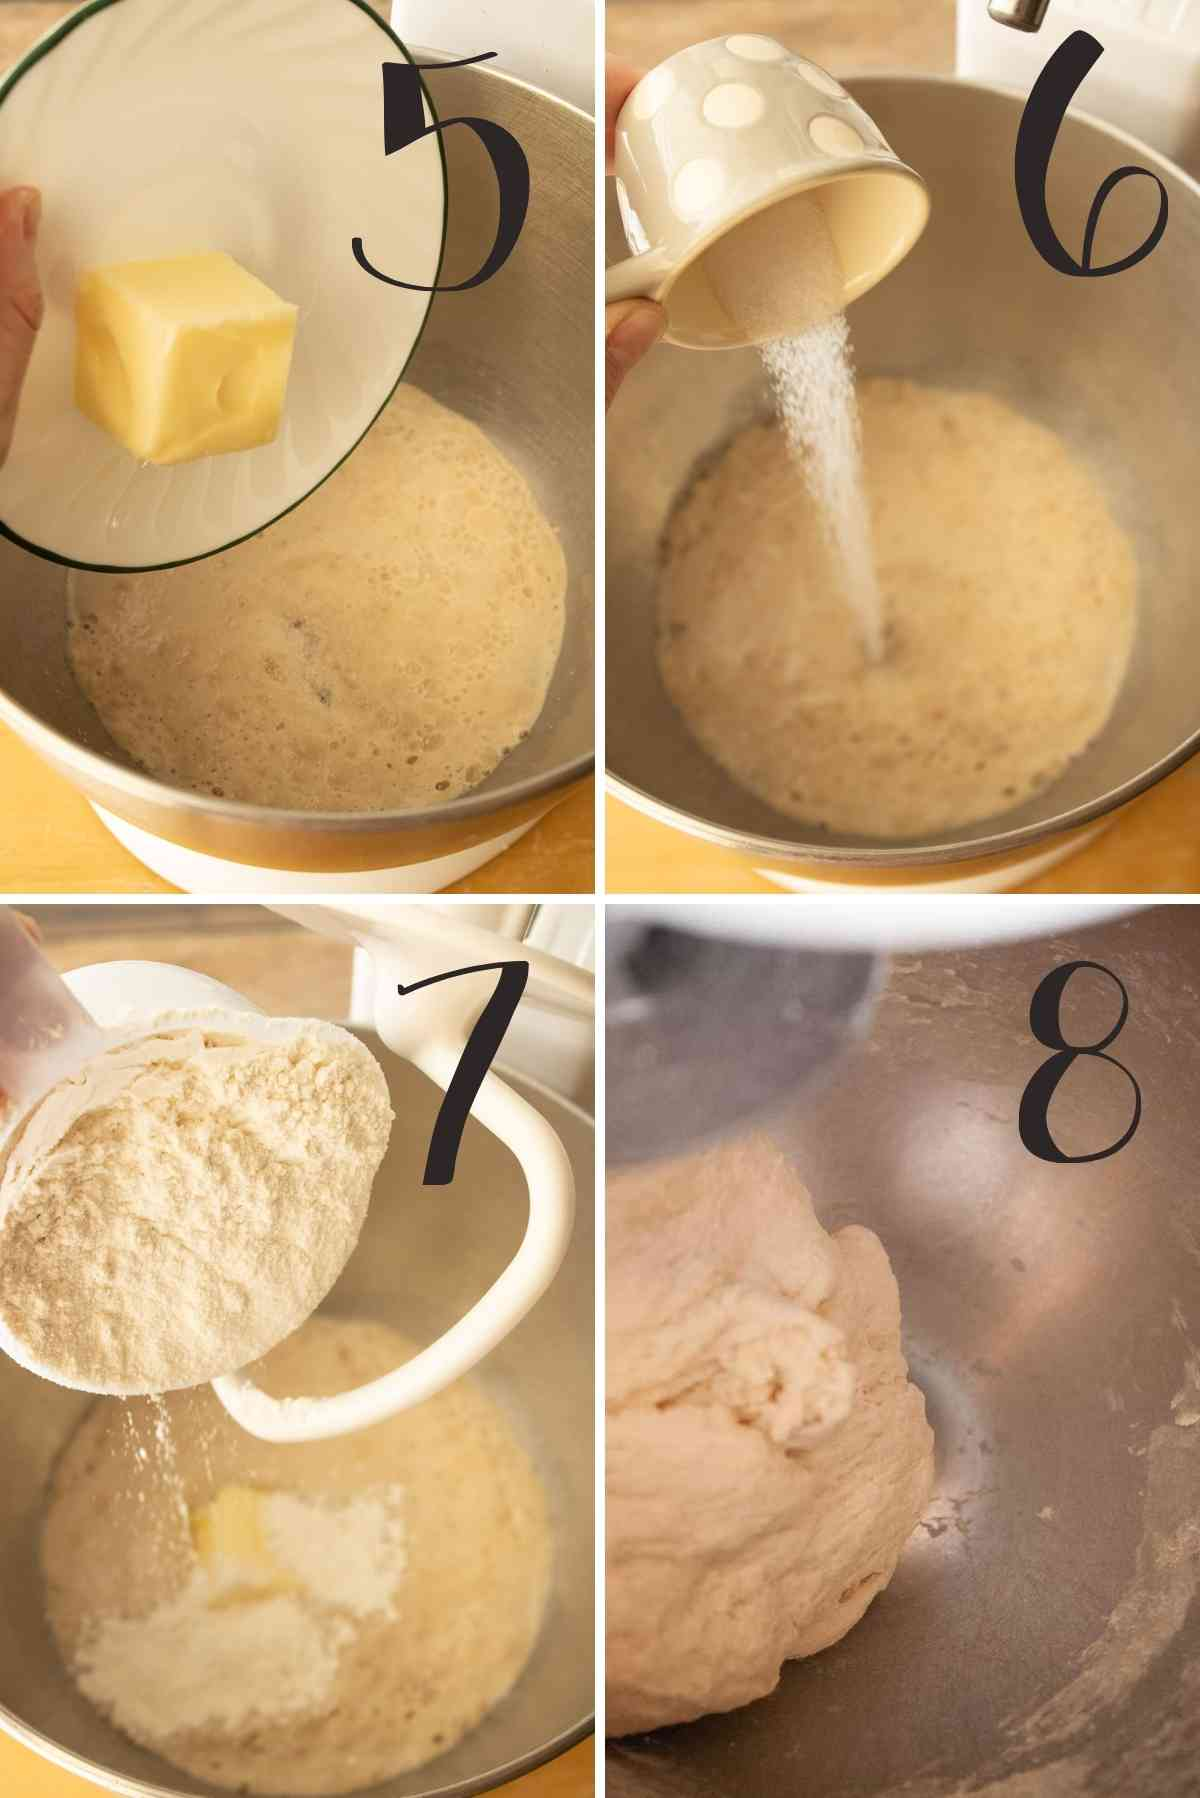 Butter, salt and flour added to the yeast mixture and kneaded for 3 minutes.